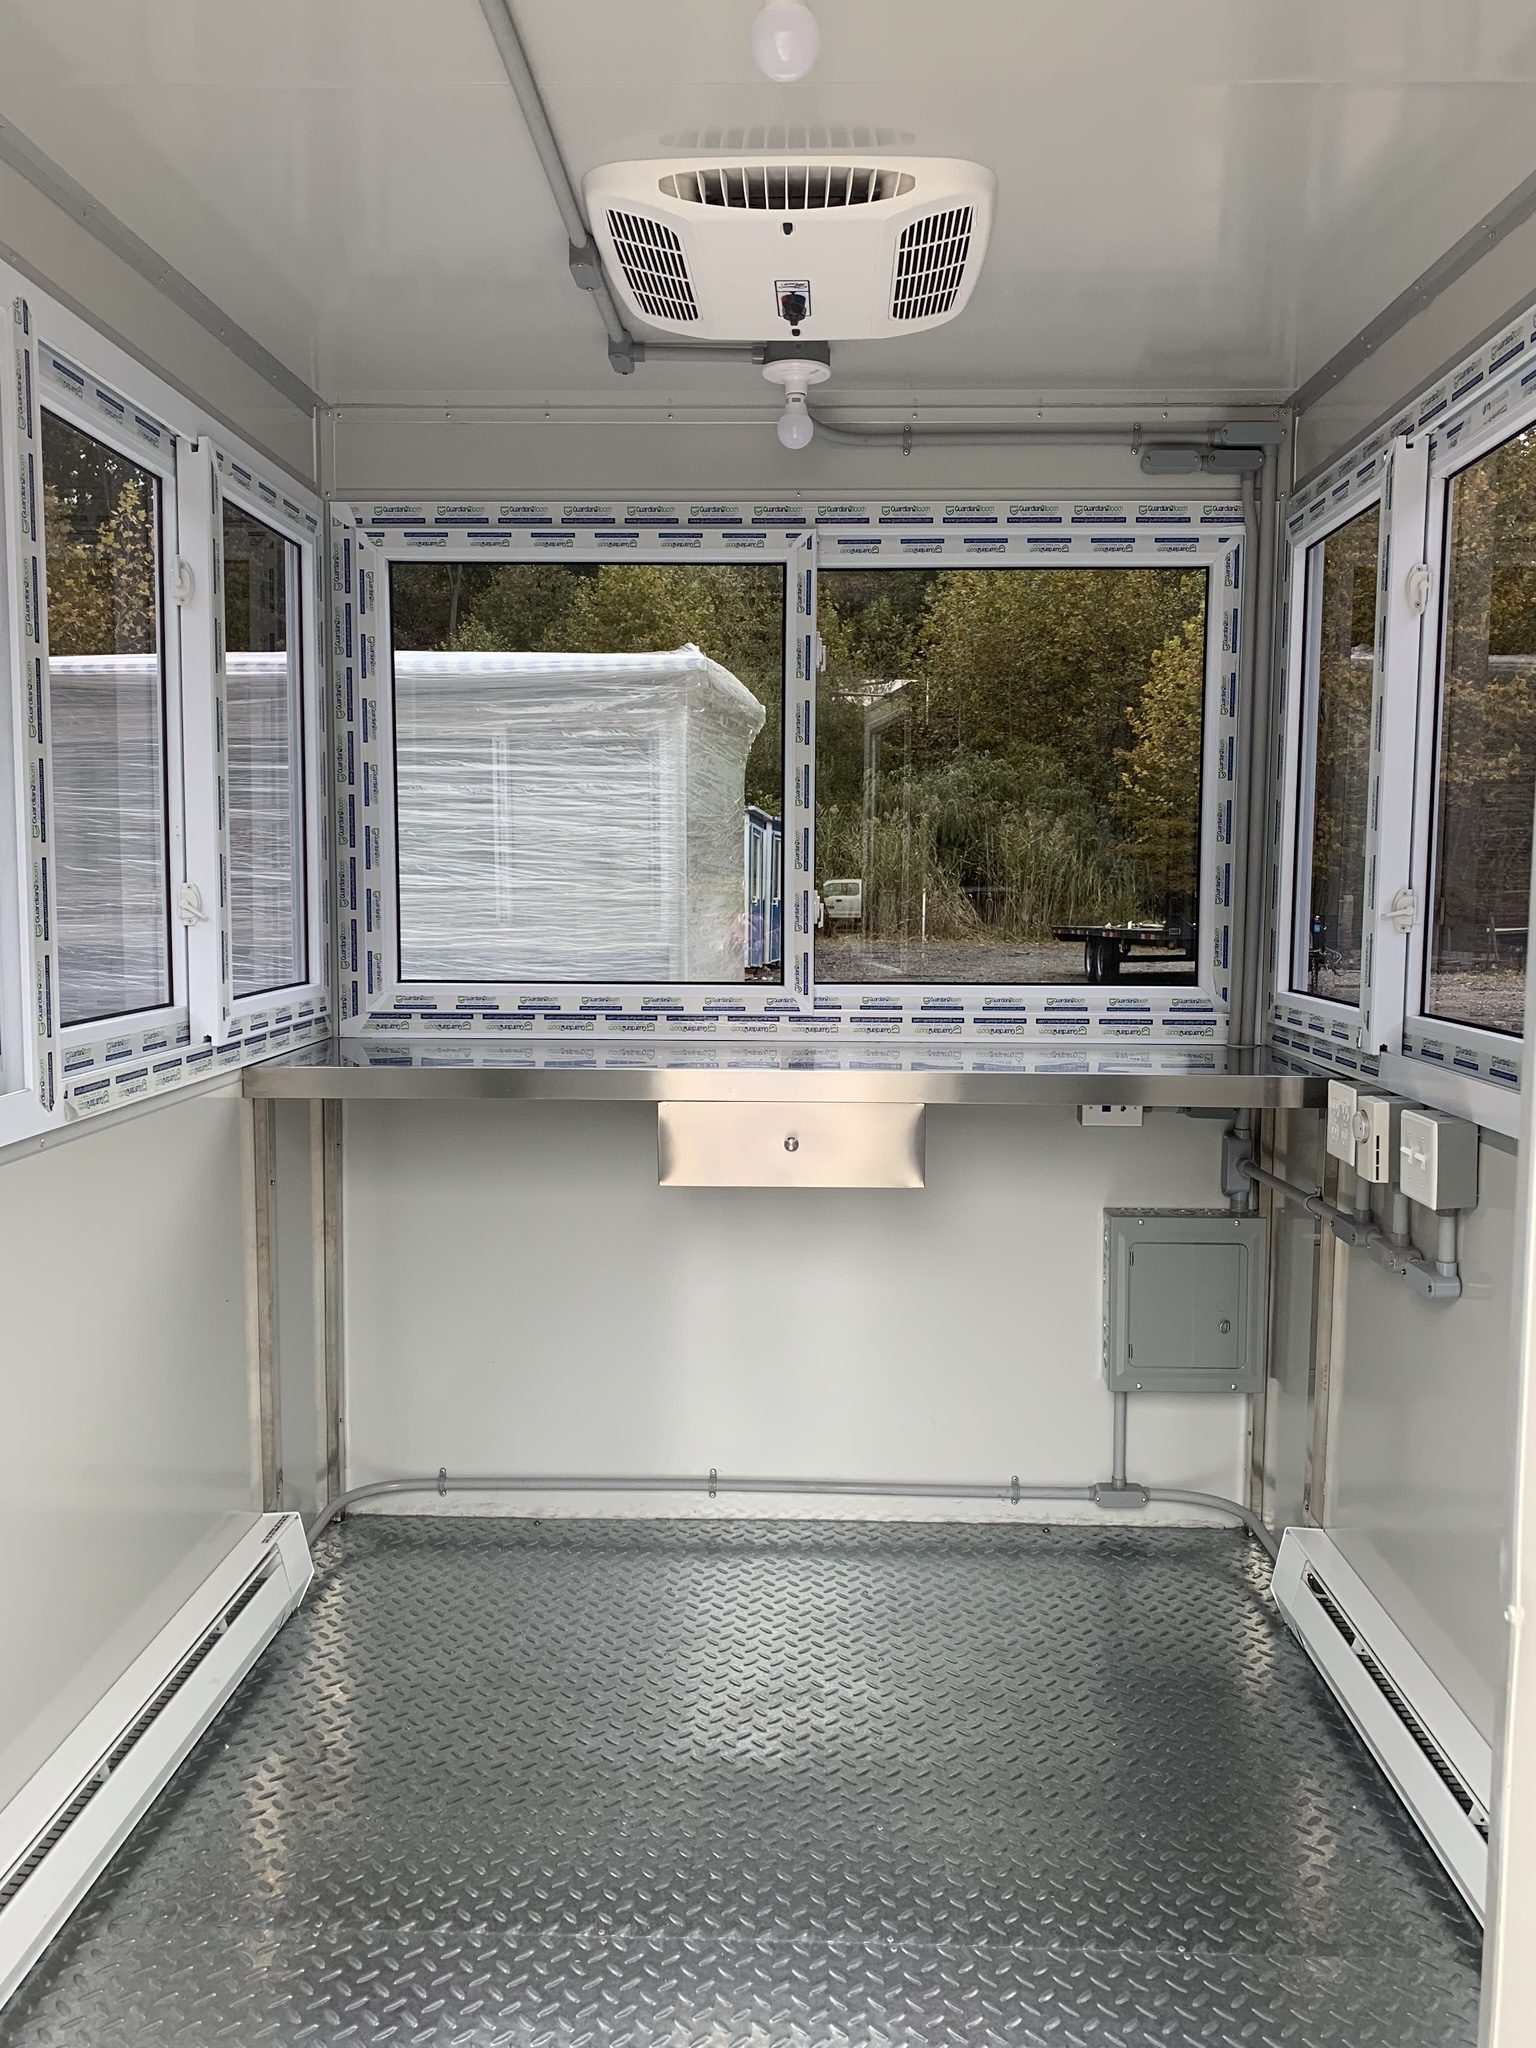 Heat and Rooftop Air Conditioner, 6x8 Hospital Security Booth in Brighton, MA